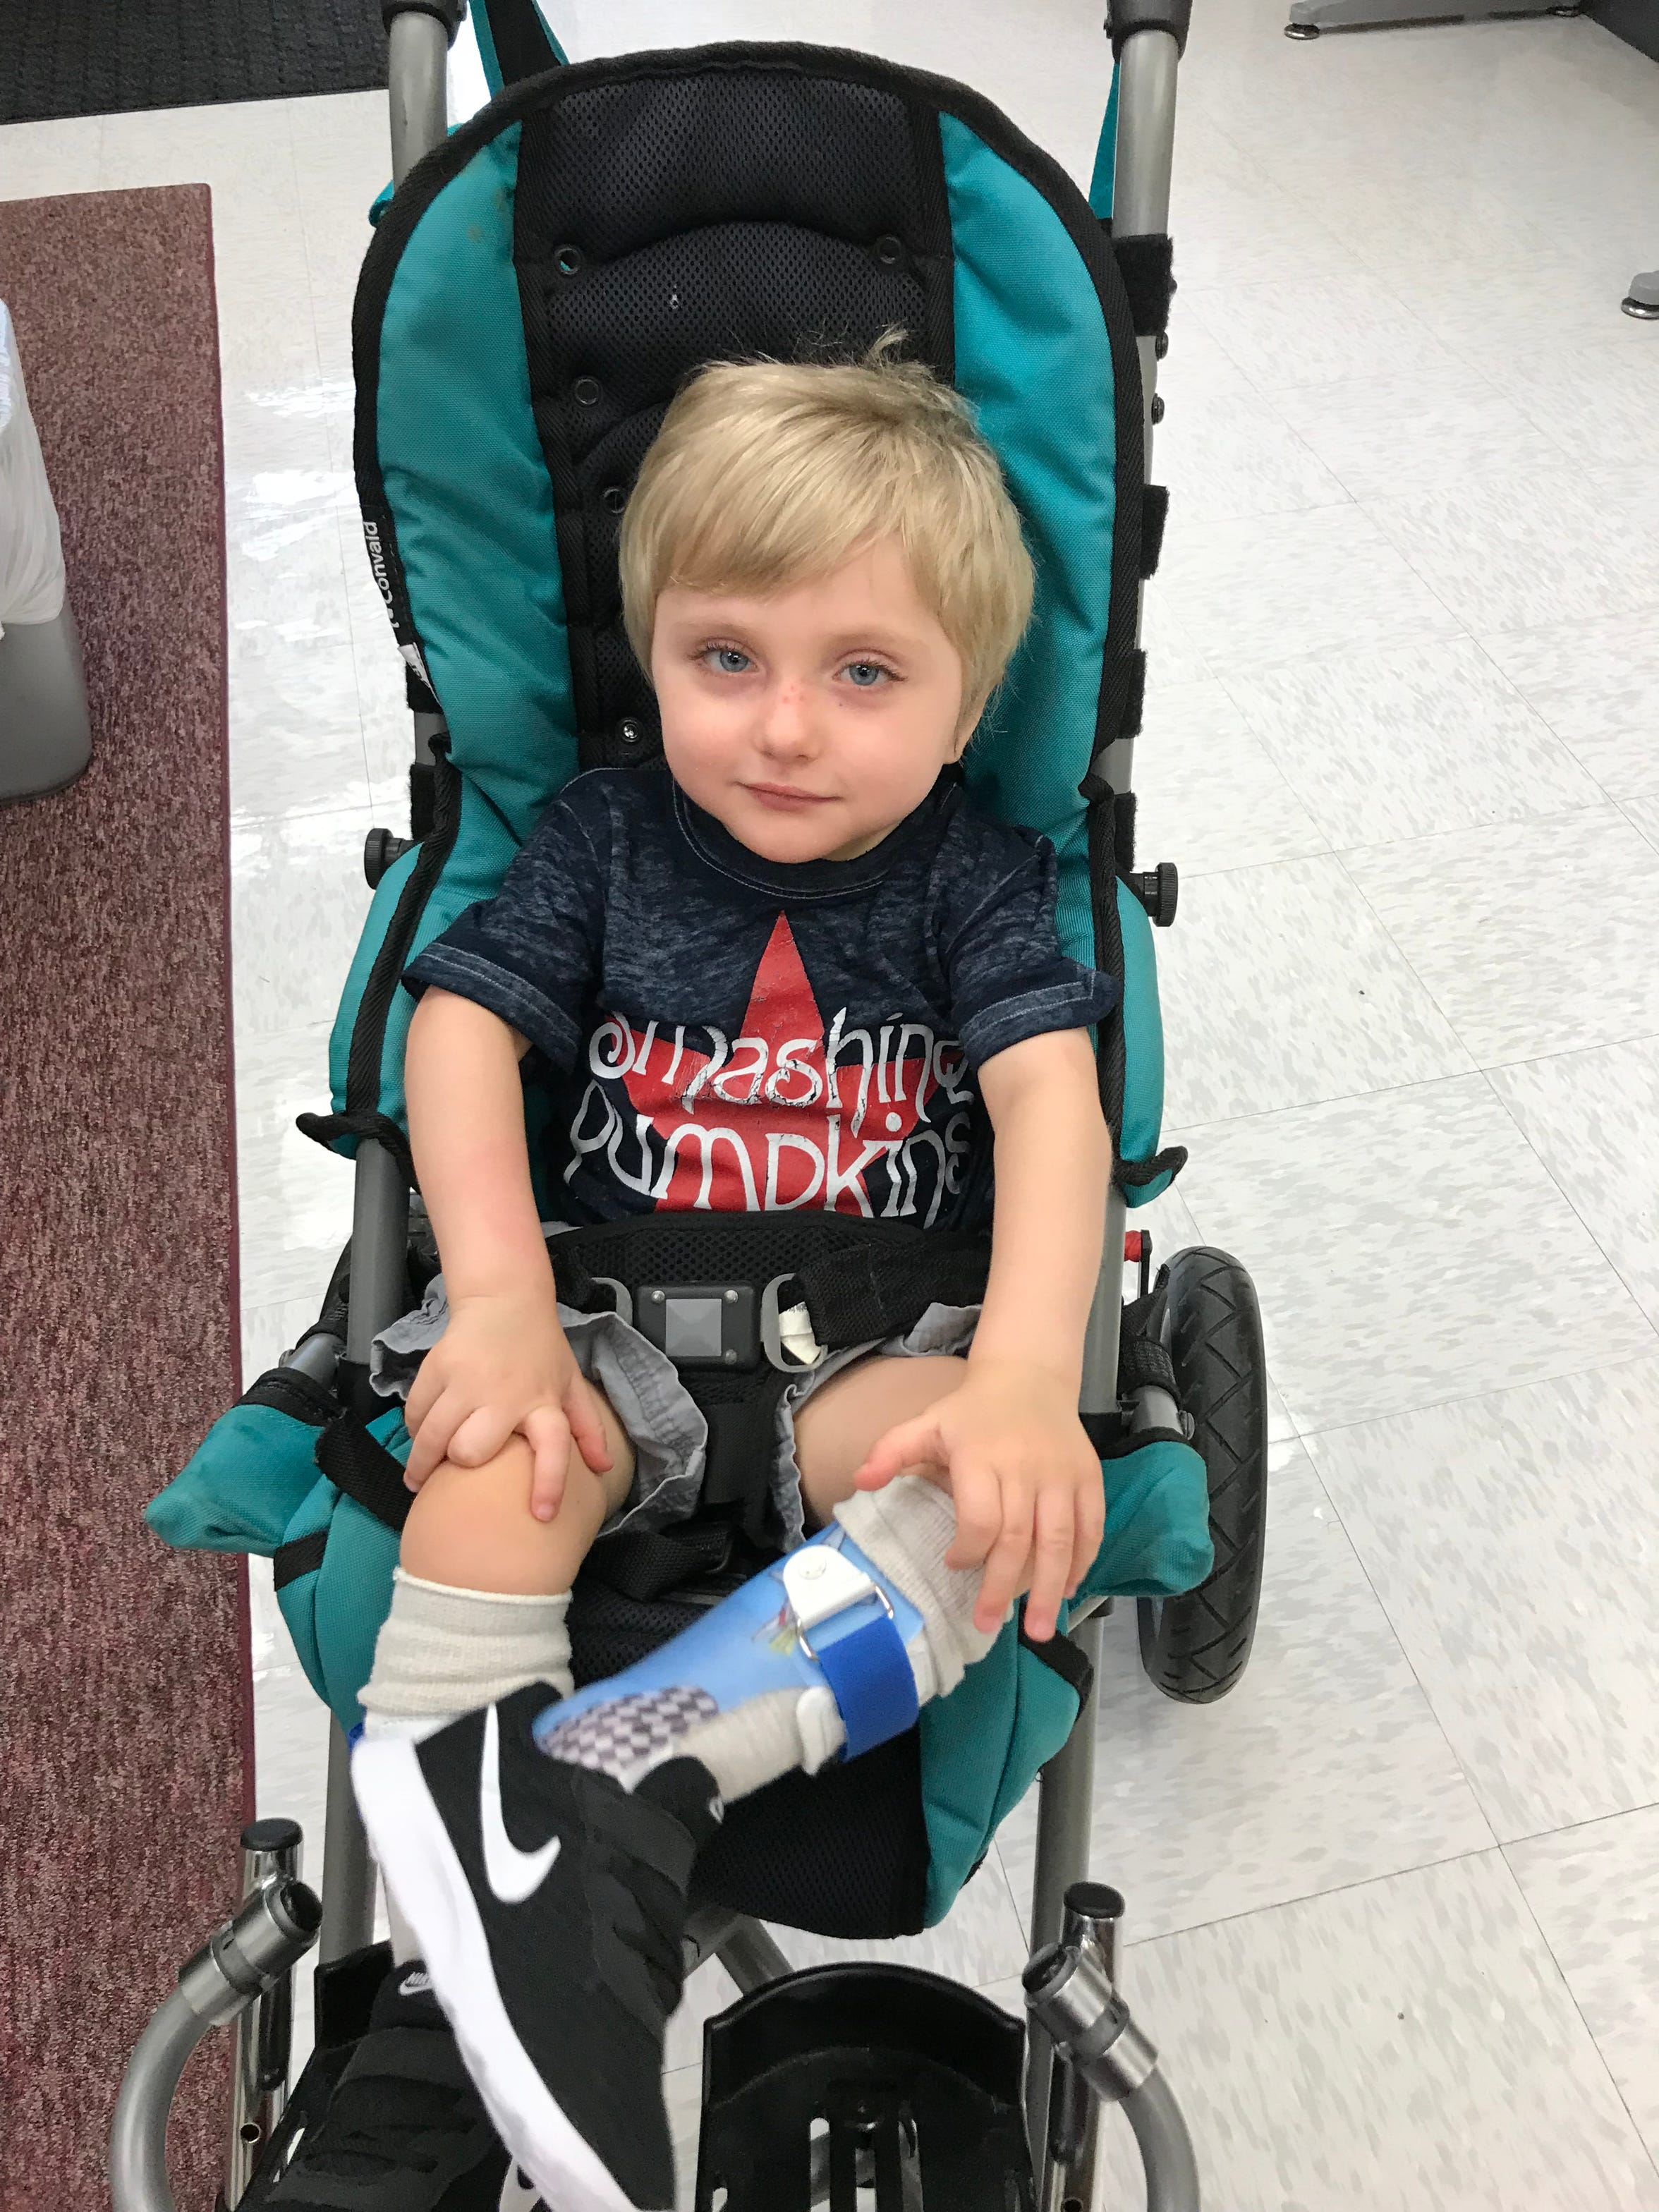 Carson Tugman, 3, of Staunton, at UVA Health Systems. Tugman suffers from a progressive neurodevelopmental disorder caused by a pathogenic variant of the MECP2 gene known as Rett Syndrome.